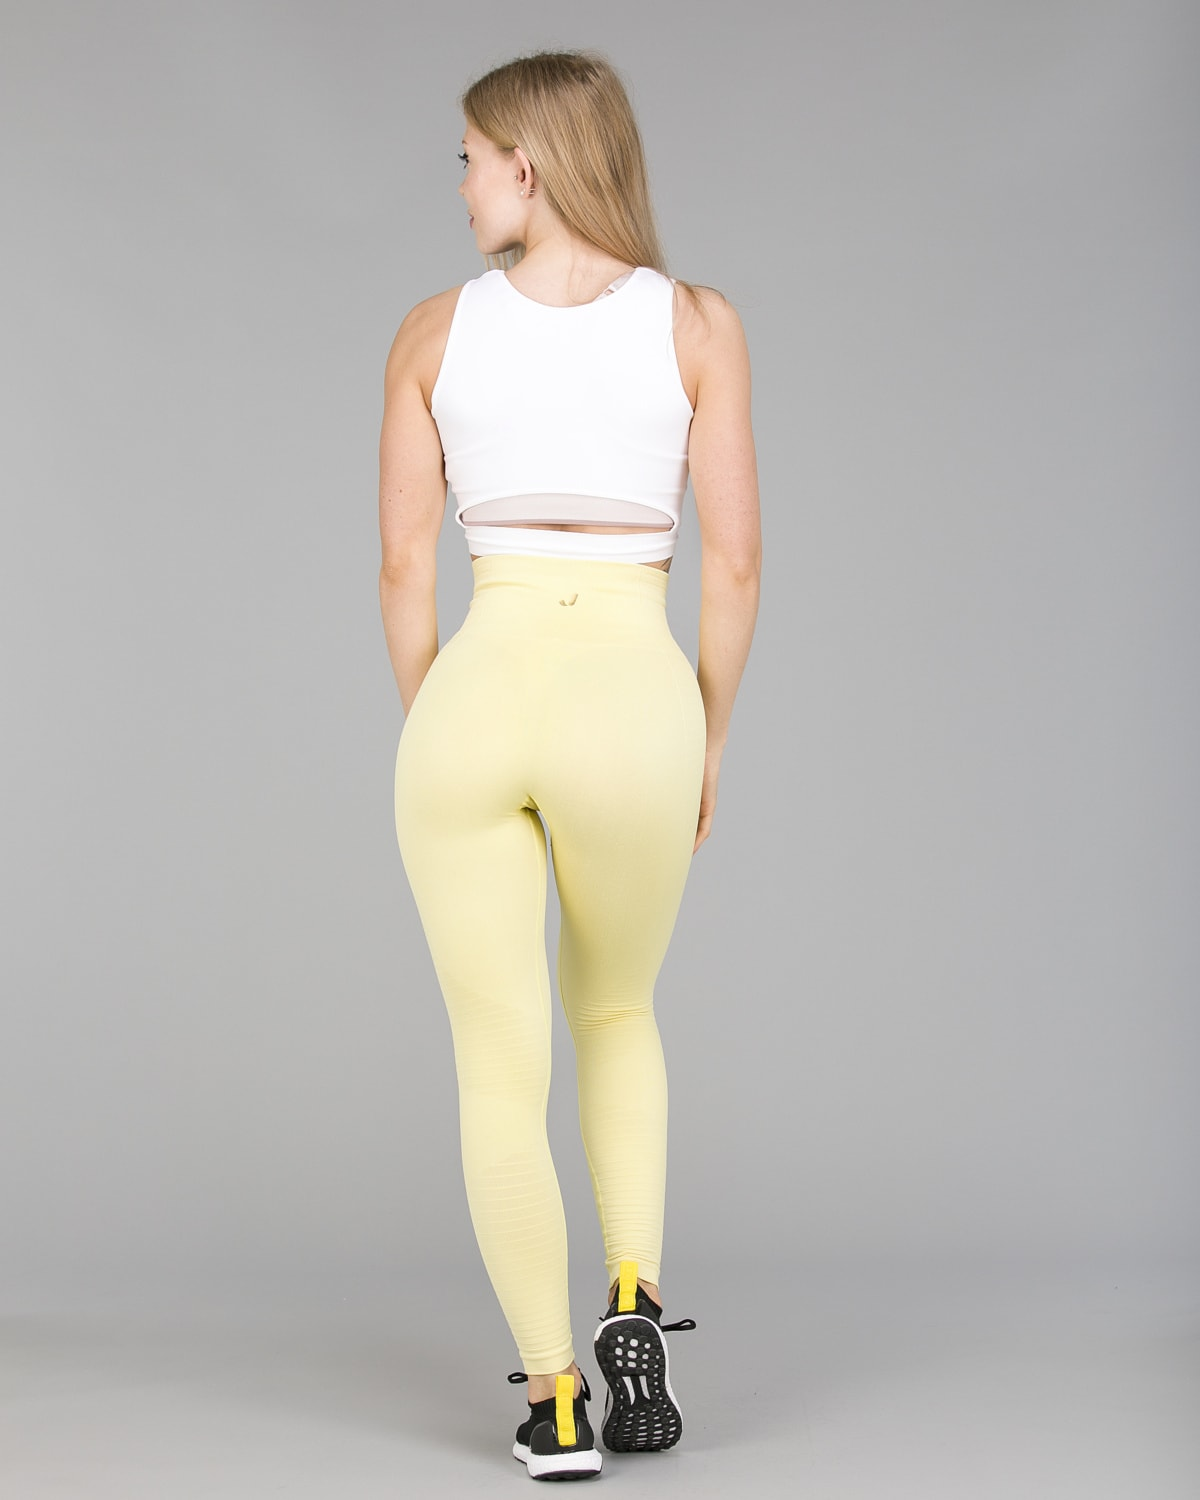 Jerf Gela 2.0 Tights Yellow Pastel5